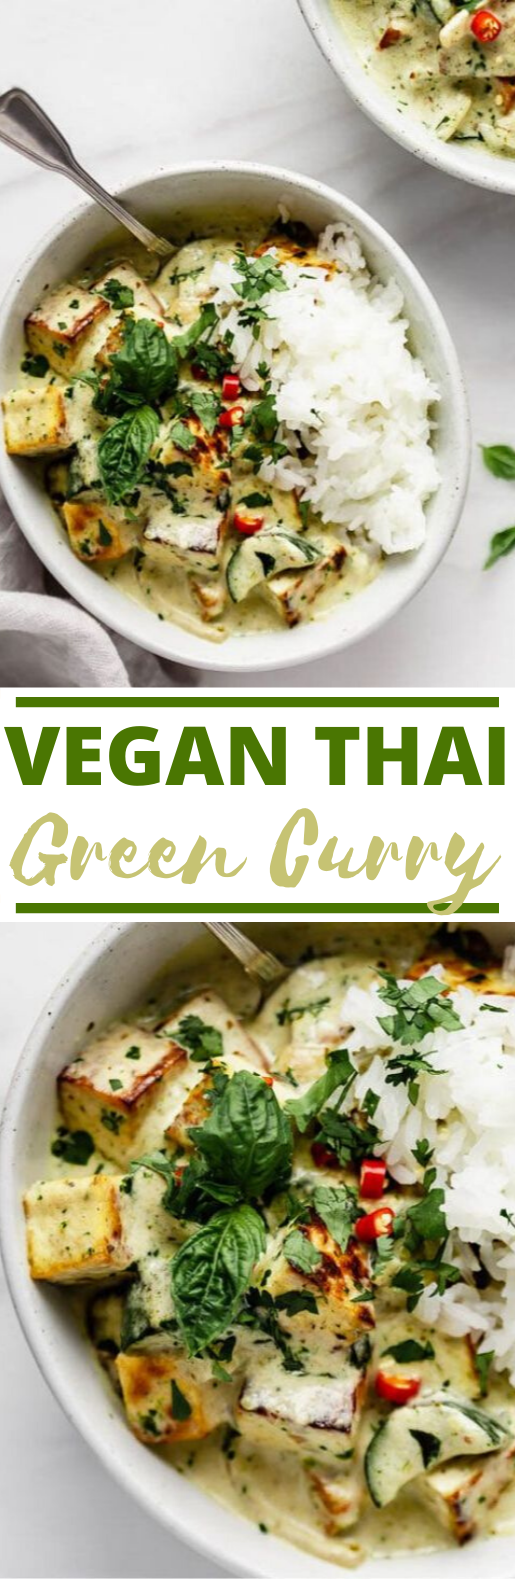 Thai Green Curry Tofu #vegan #recipes #dinner #vegetarian #curry